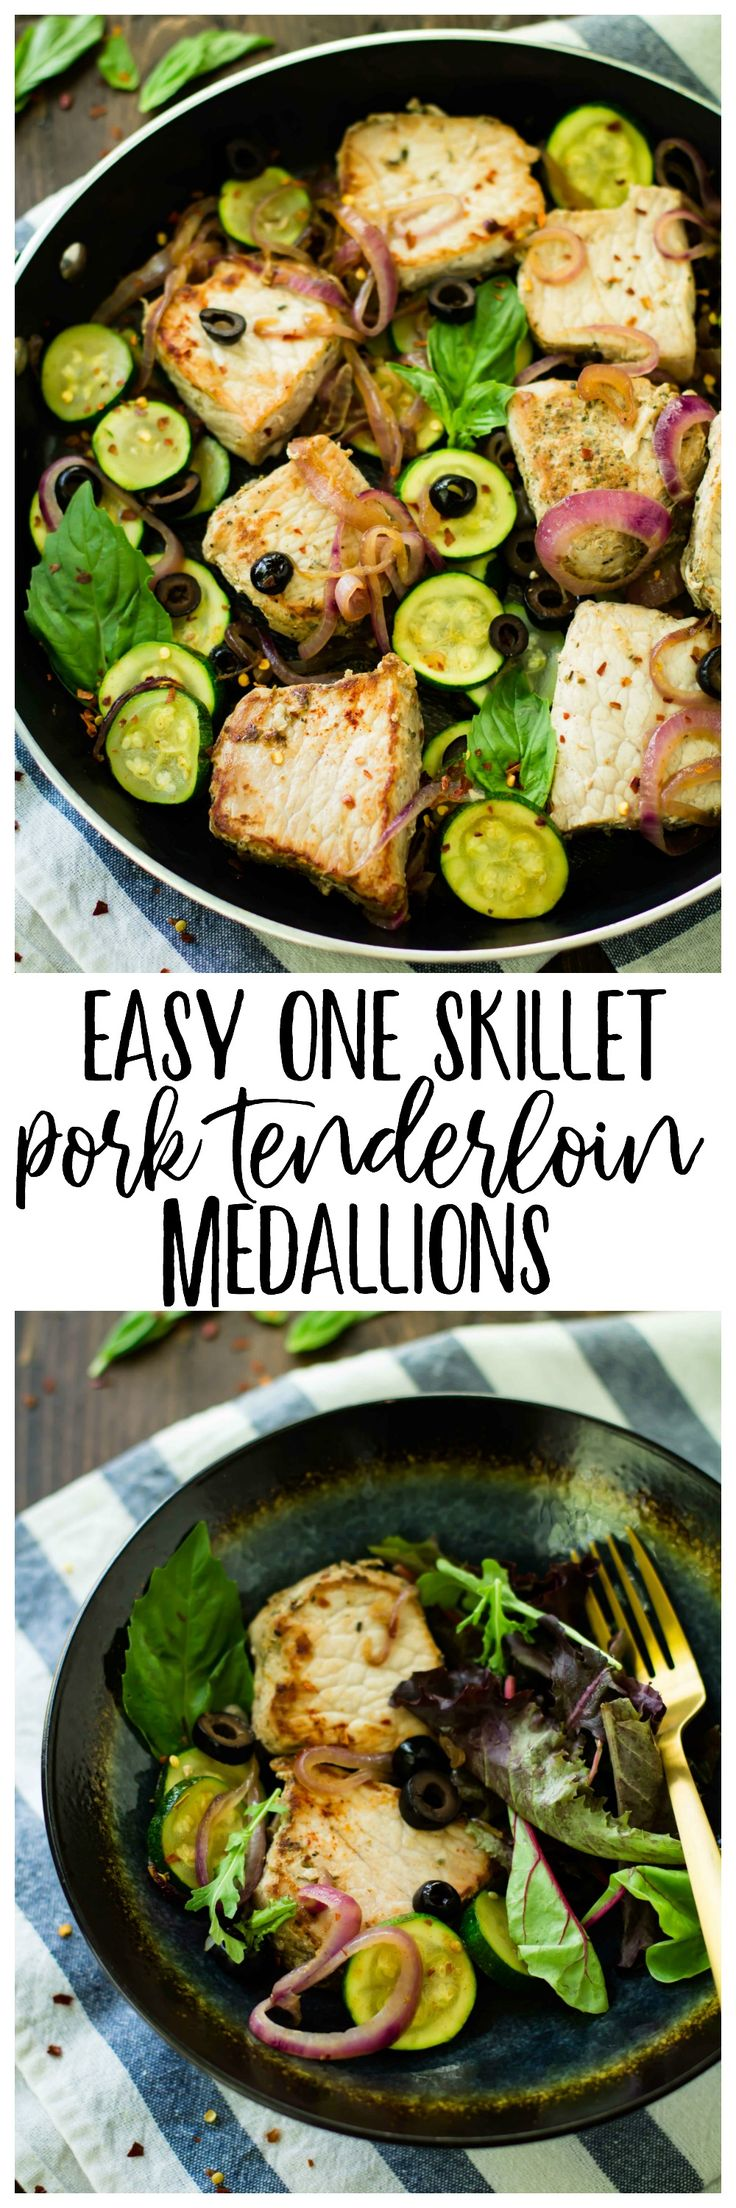 Easy One Skillet Pork Tenderloin Medallions with zucchini makes for an easy one pan meal! It's protein and veggie packed, nourishing, paleo, low carb, and ready in less than 30 minutes. You and your family will love this flavorful pork loin skillet dish, that's perfect for busy weeknights! @Smithfieldfoods @Walmart #RealFlavorRealFast #AD